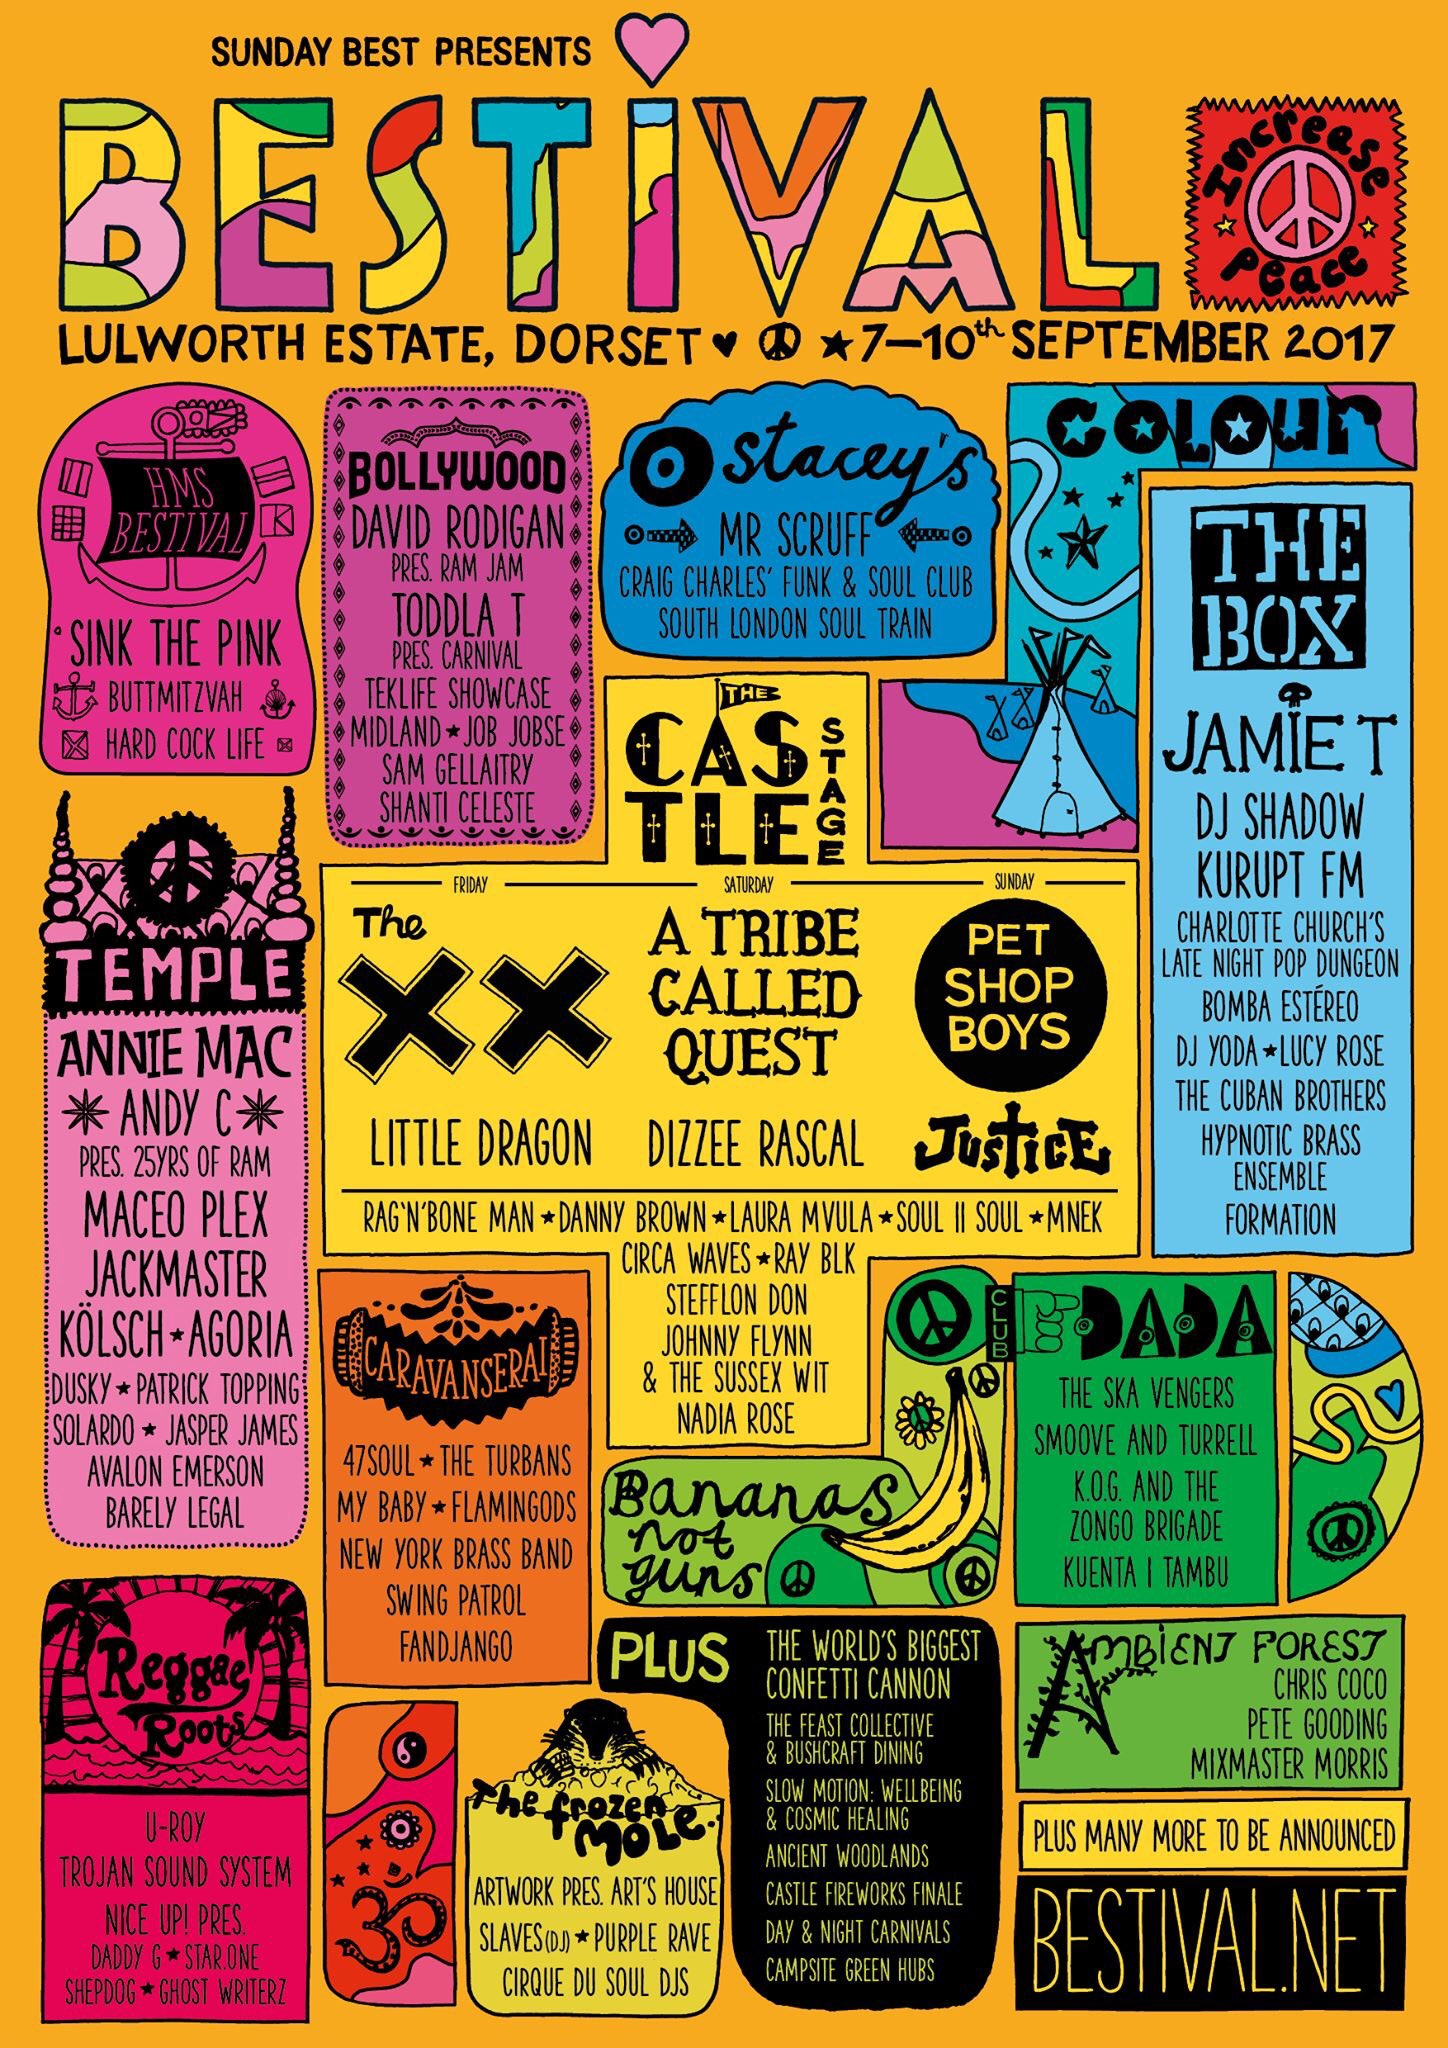 🚨ANOTHER ONE 🚨**DJ Khaled voice** Can't wait already @Bestival https://t.co/OGHKF01CNs